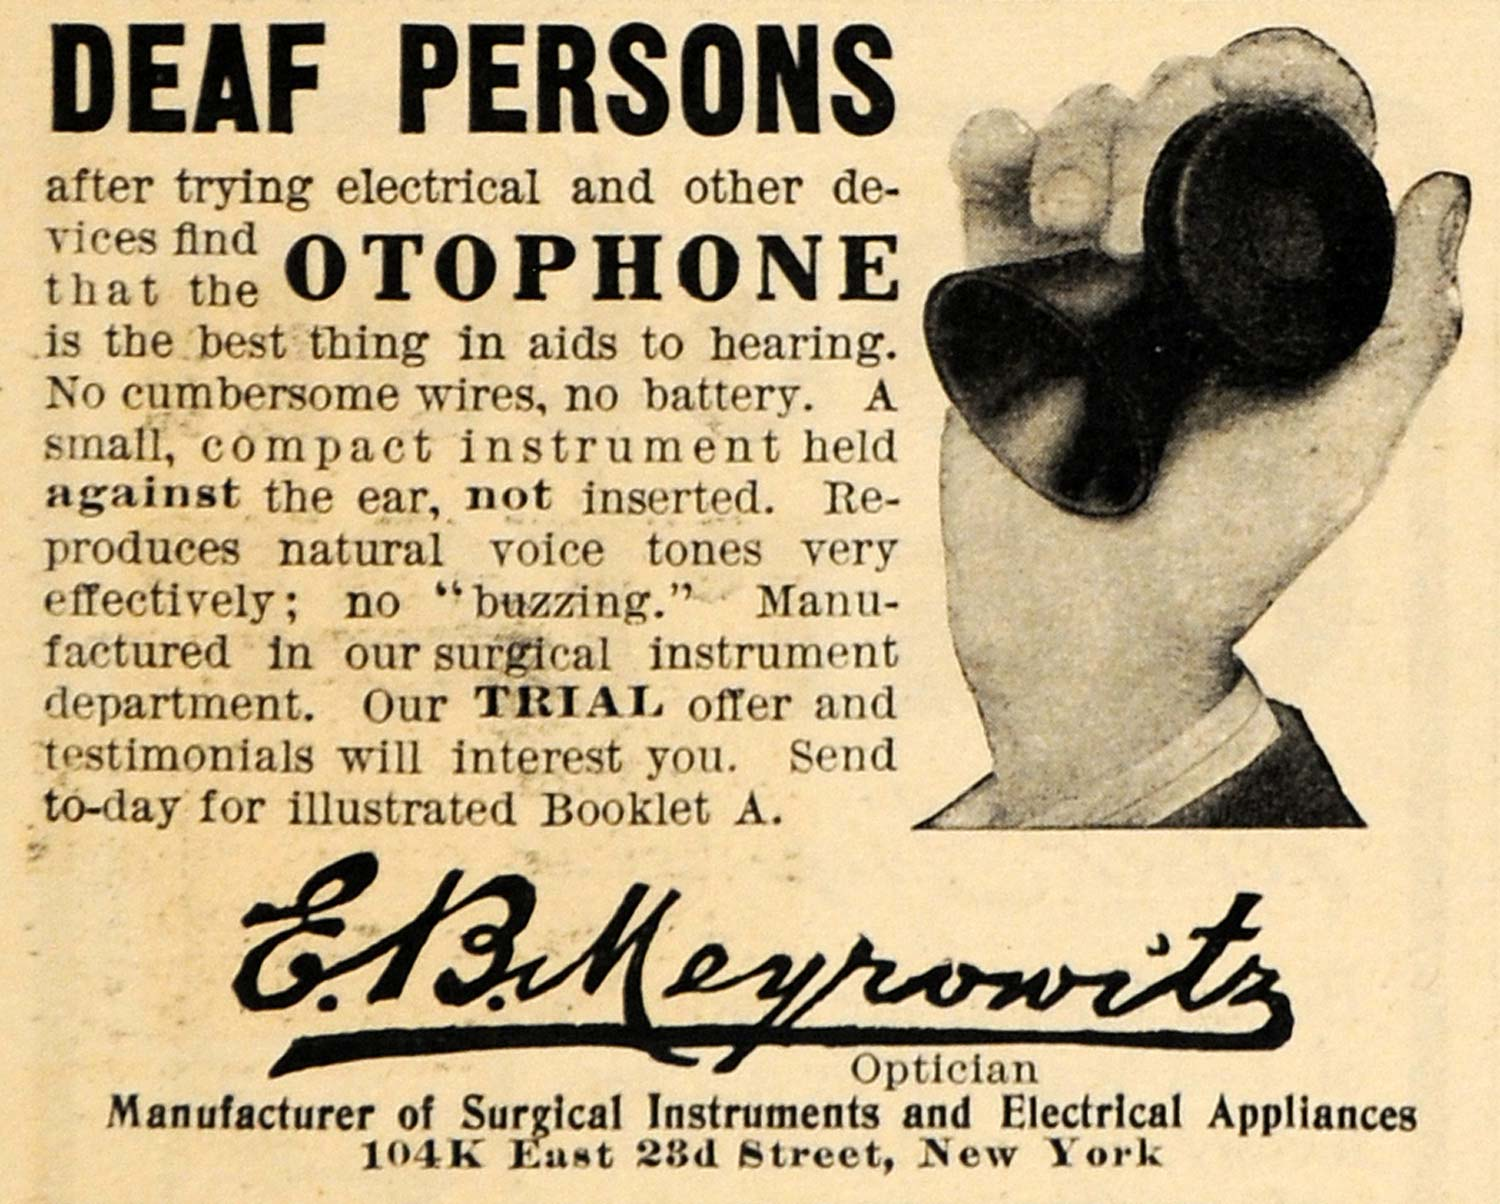 1910 Ad E. B. Meyrowitz Otophone Deaf Persons New York - ORIGINAL HM1